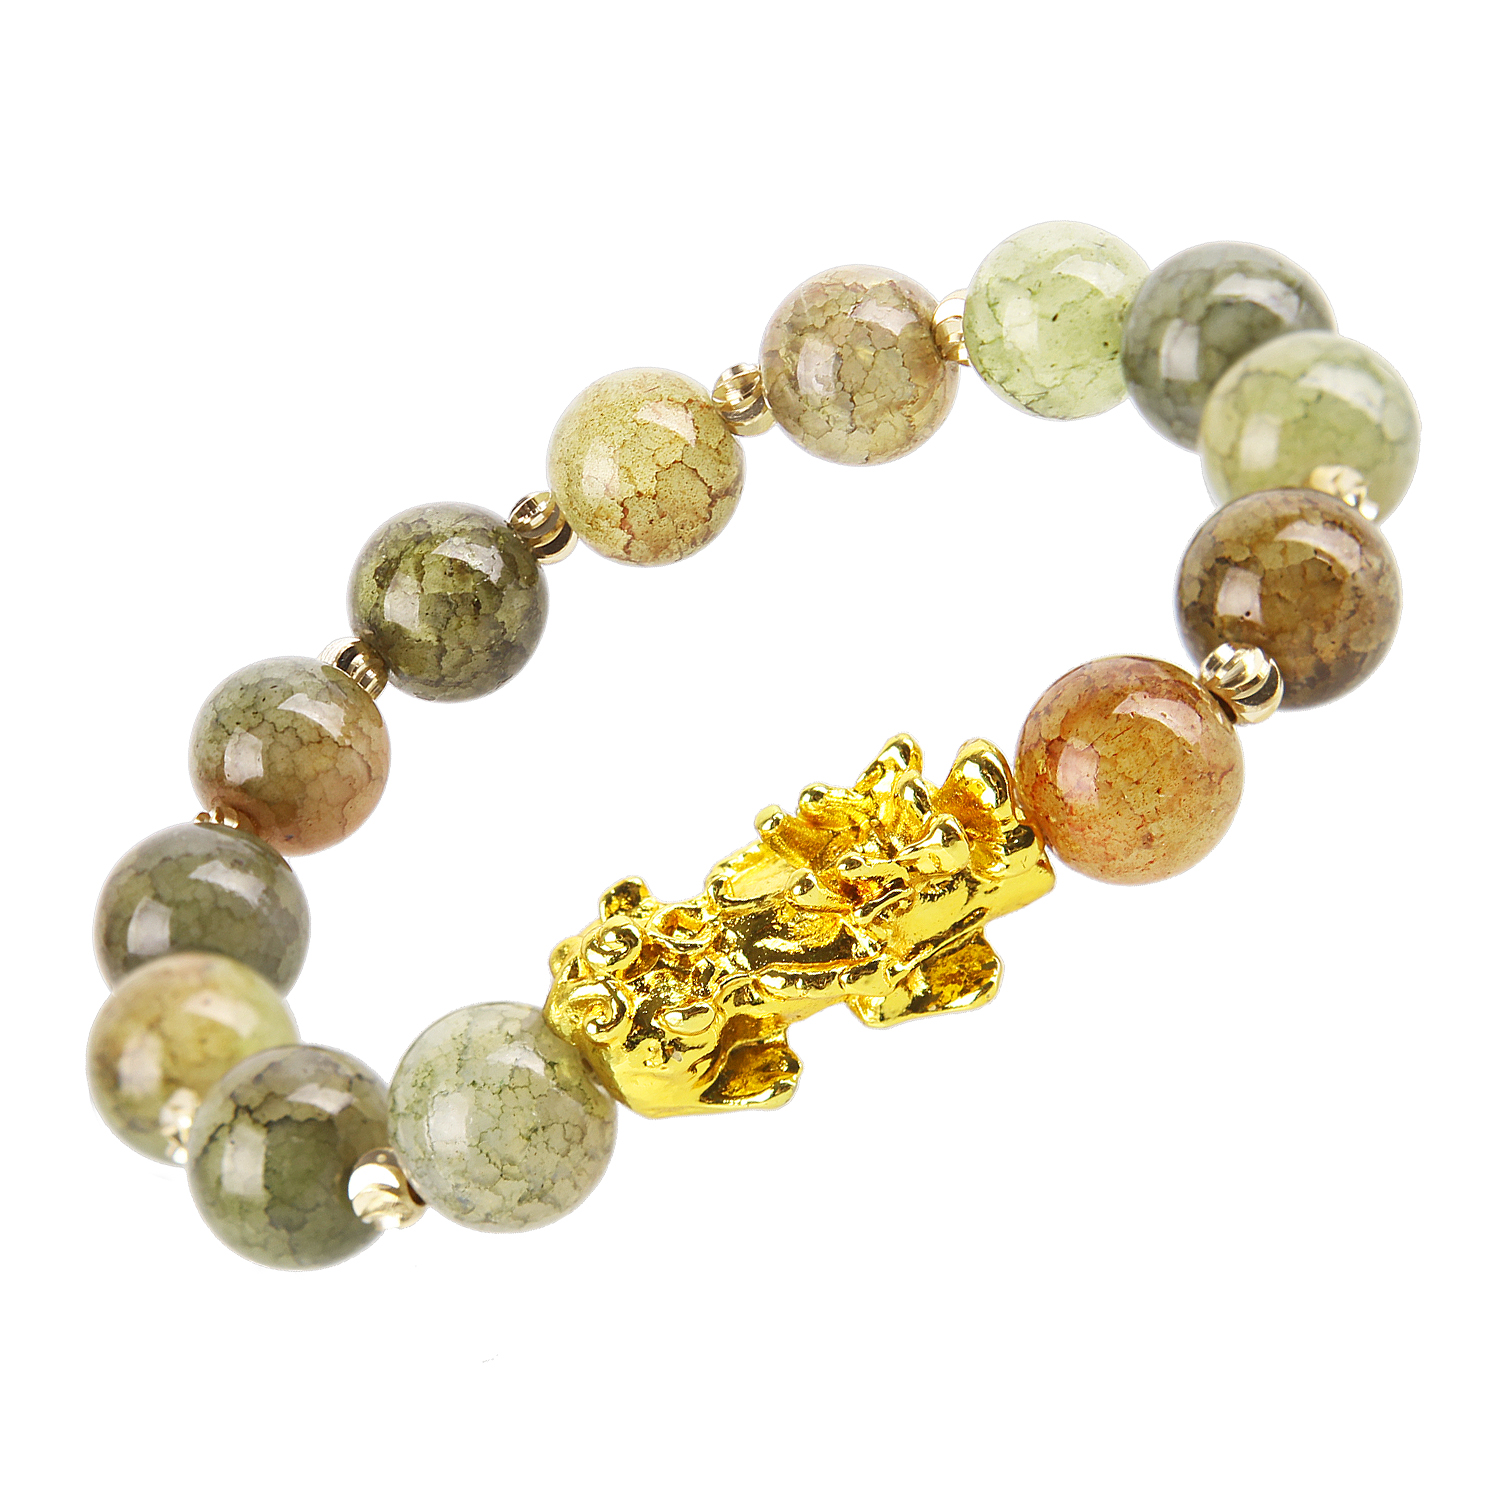 Beads size (10mm)